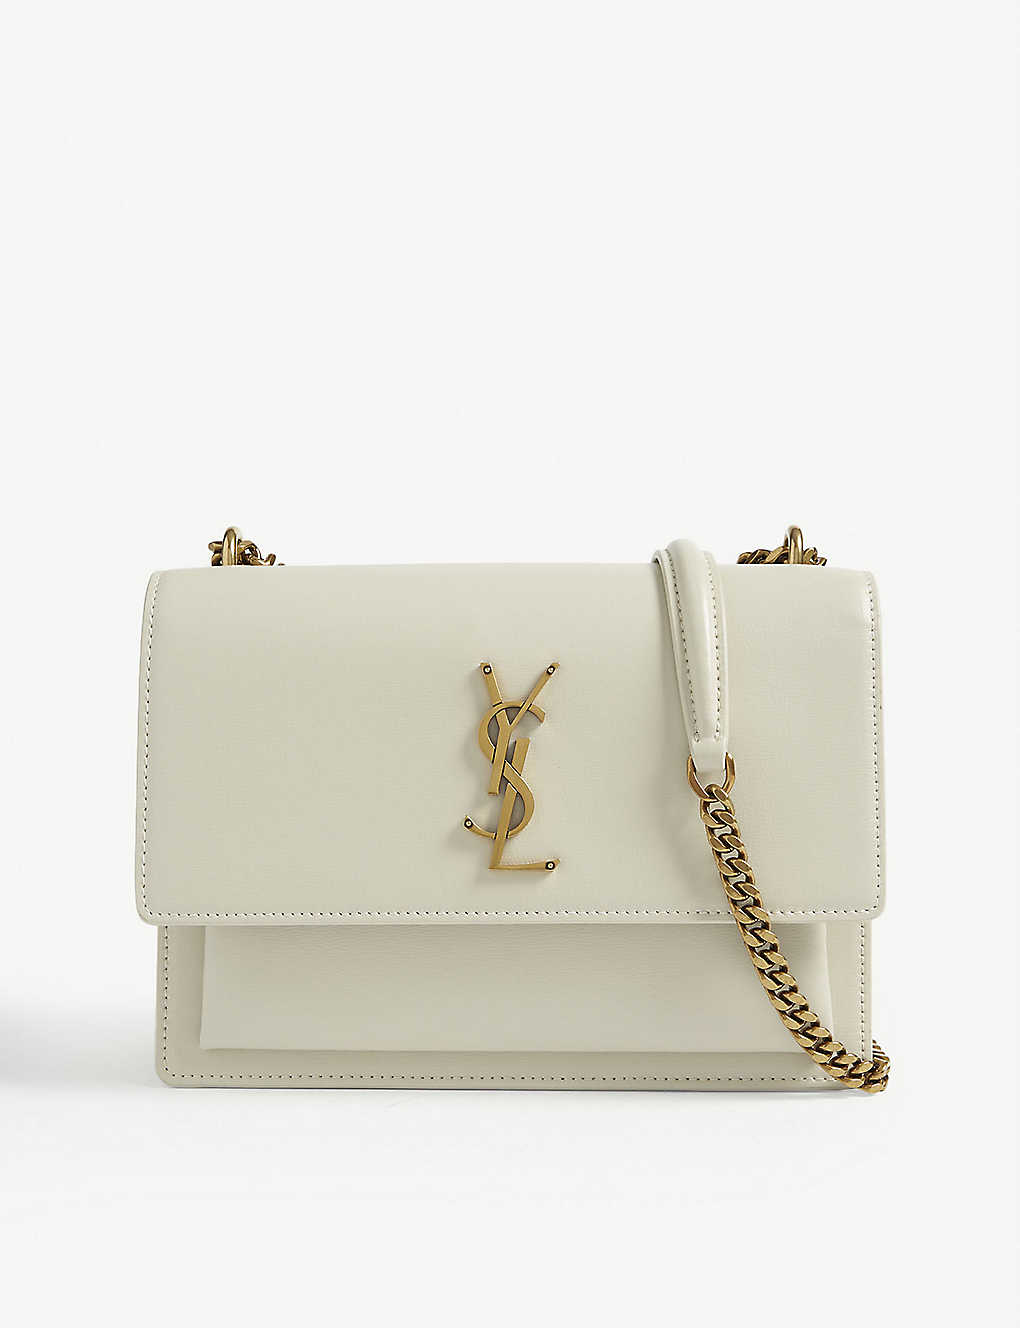 SAINT LAURENT: Sunset medium leather shoulder bag